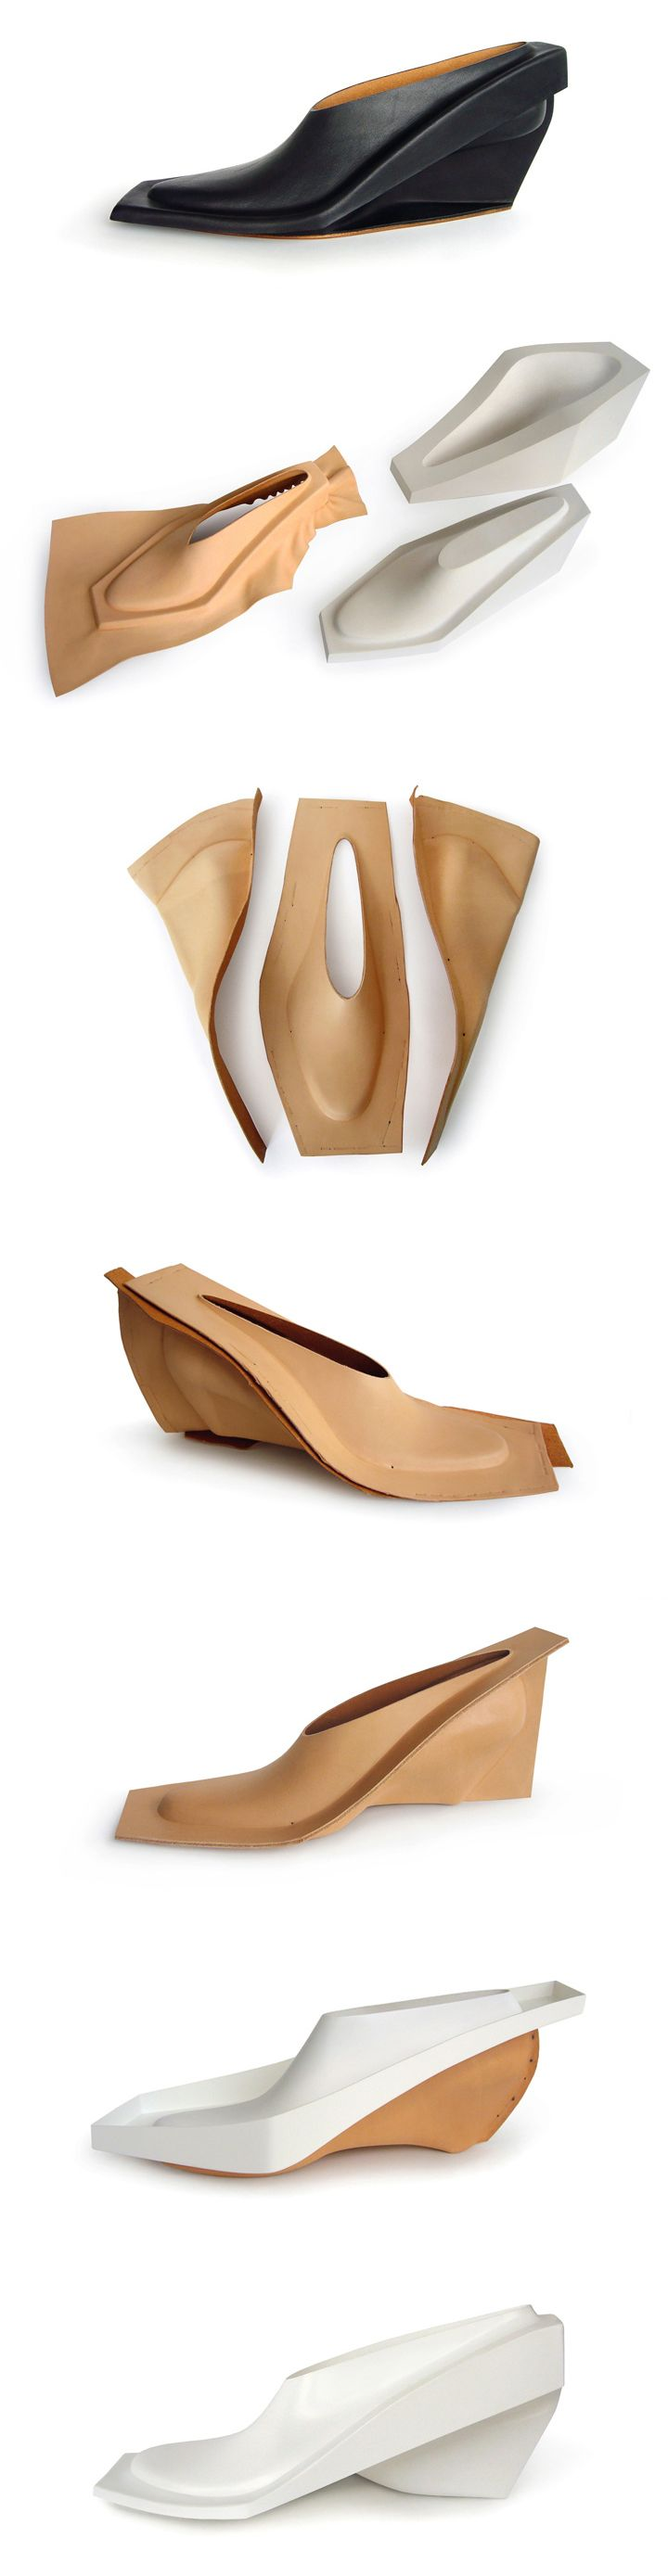 Pressedleathershoe / 2011  Materials: leather and plastics  Made using a leather processing technique in which leather is soaked in water and pressed in between a two-part mould, forming it into a three-dimensional shape. The leather parts are then dried, cut and assembled into one shoe, embedding the structure that gives the shoe it's strength. On display are material tests, mould parts, vacuum formed design tests and the final shoe.